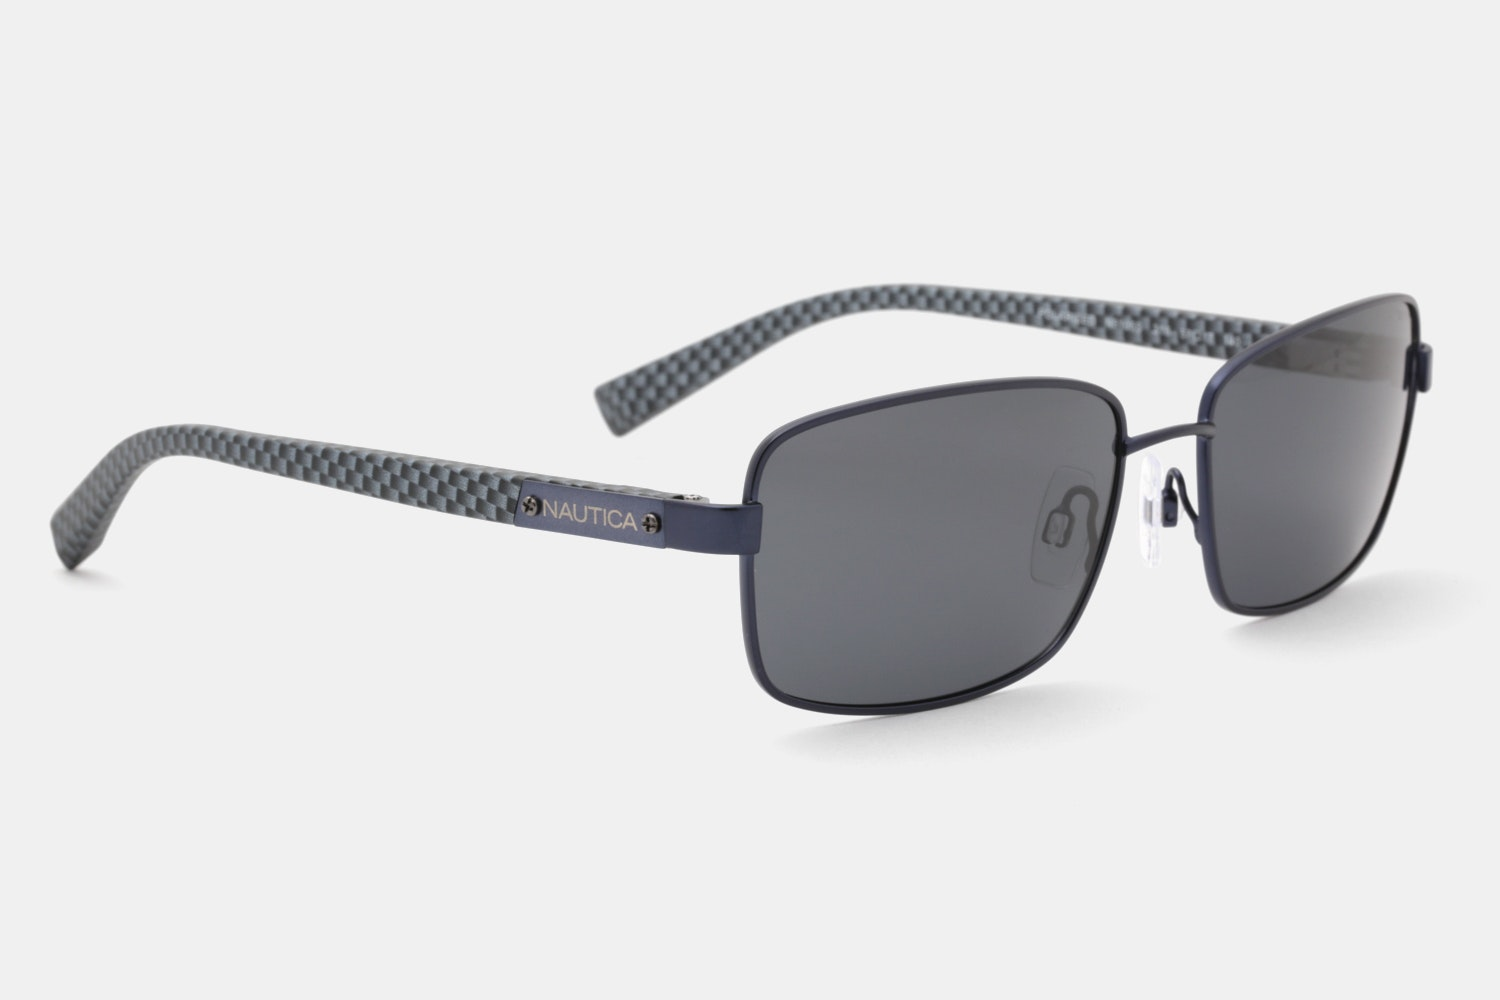 Nautica N5105S Polarized Sunglasses